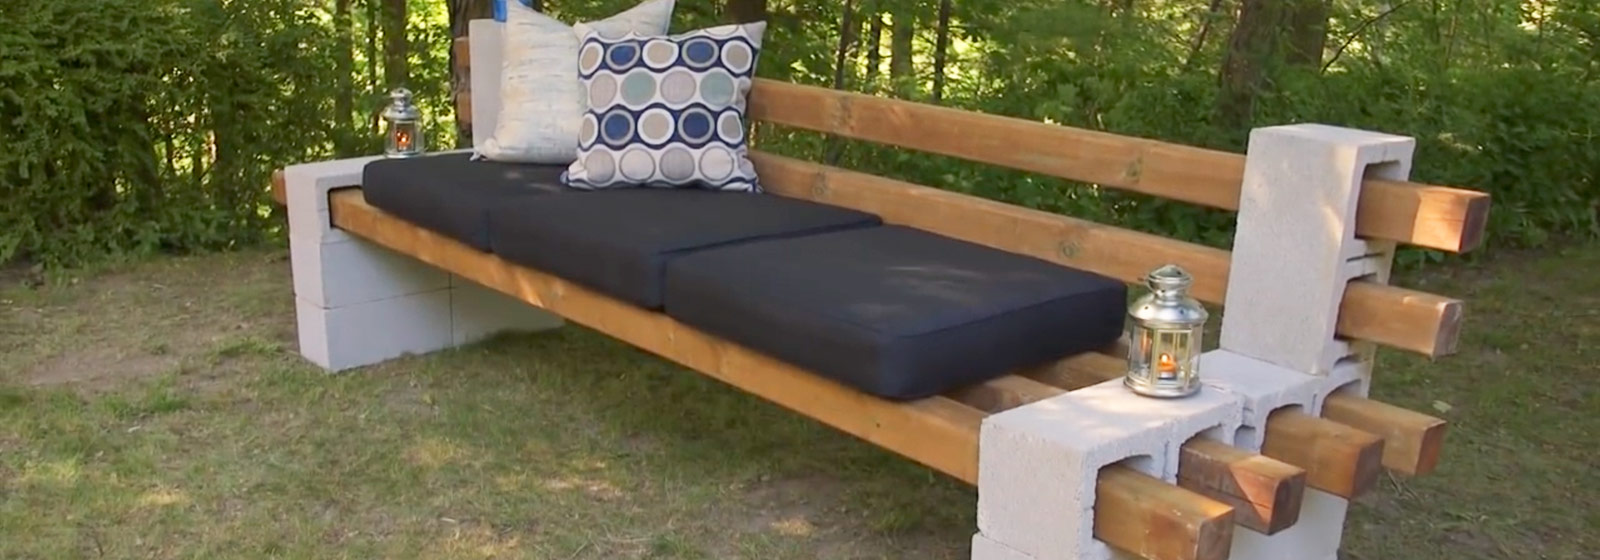 Diy cinder block bench summer simplified belairdirect for Cinder block seating area